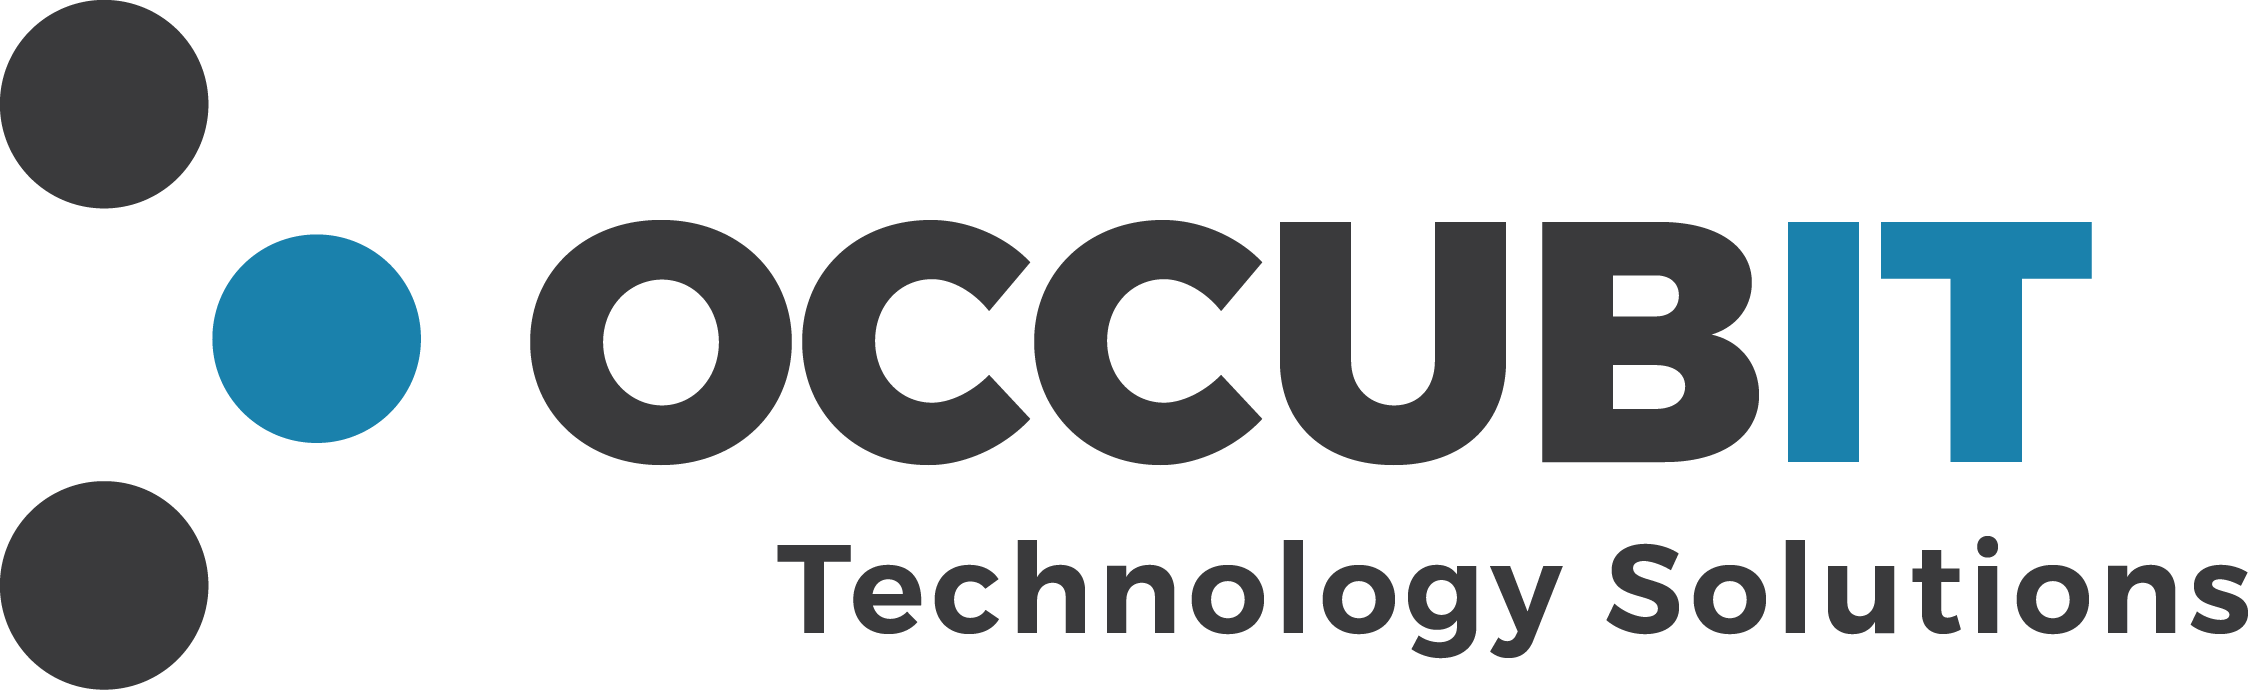 Occubit Technology Solutions